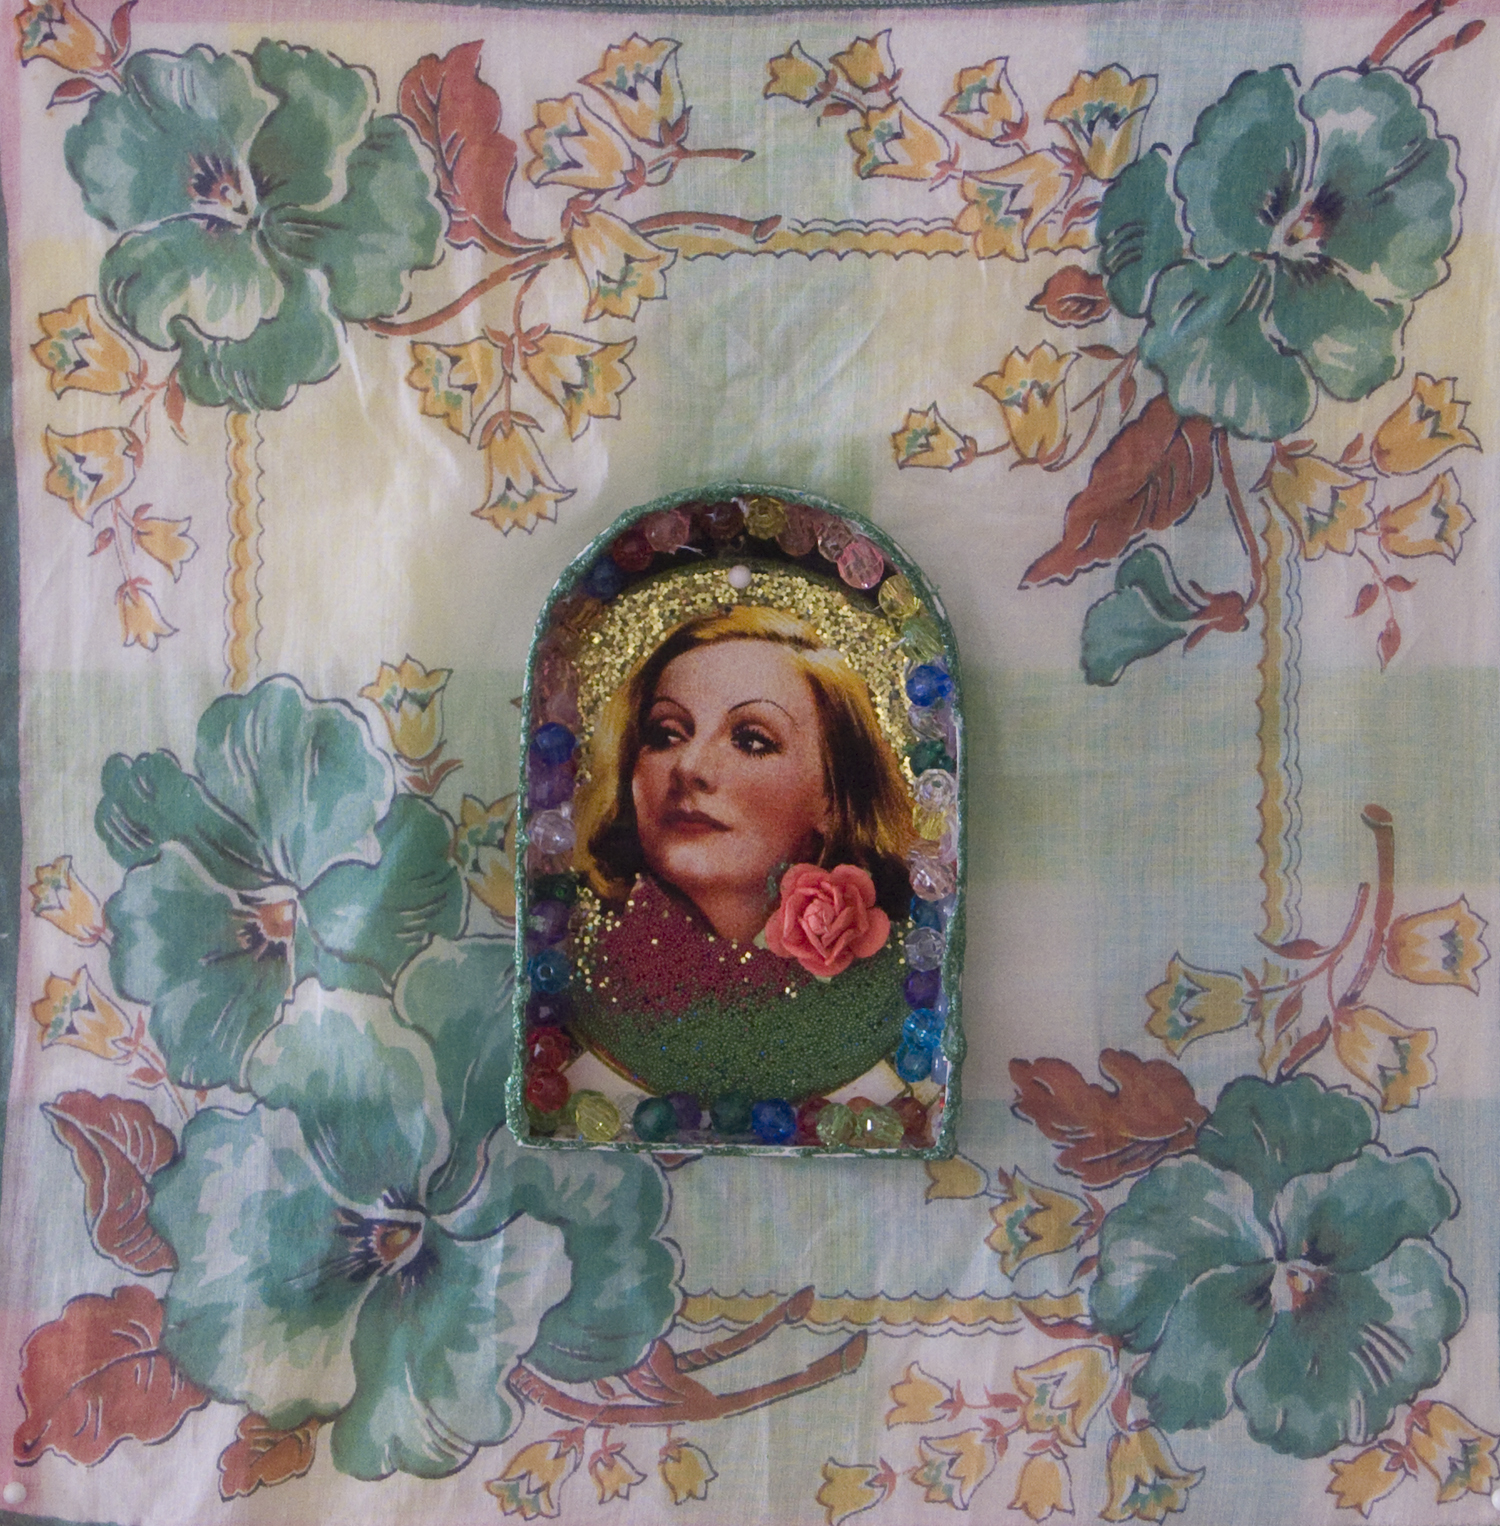 Nina Yuen   Greta Garbo 2 , 2011 mixed media collage 11 x 11 inches 27.9 x 27.9 cm